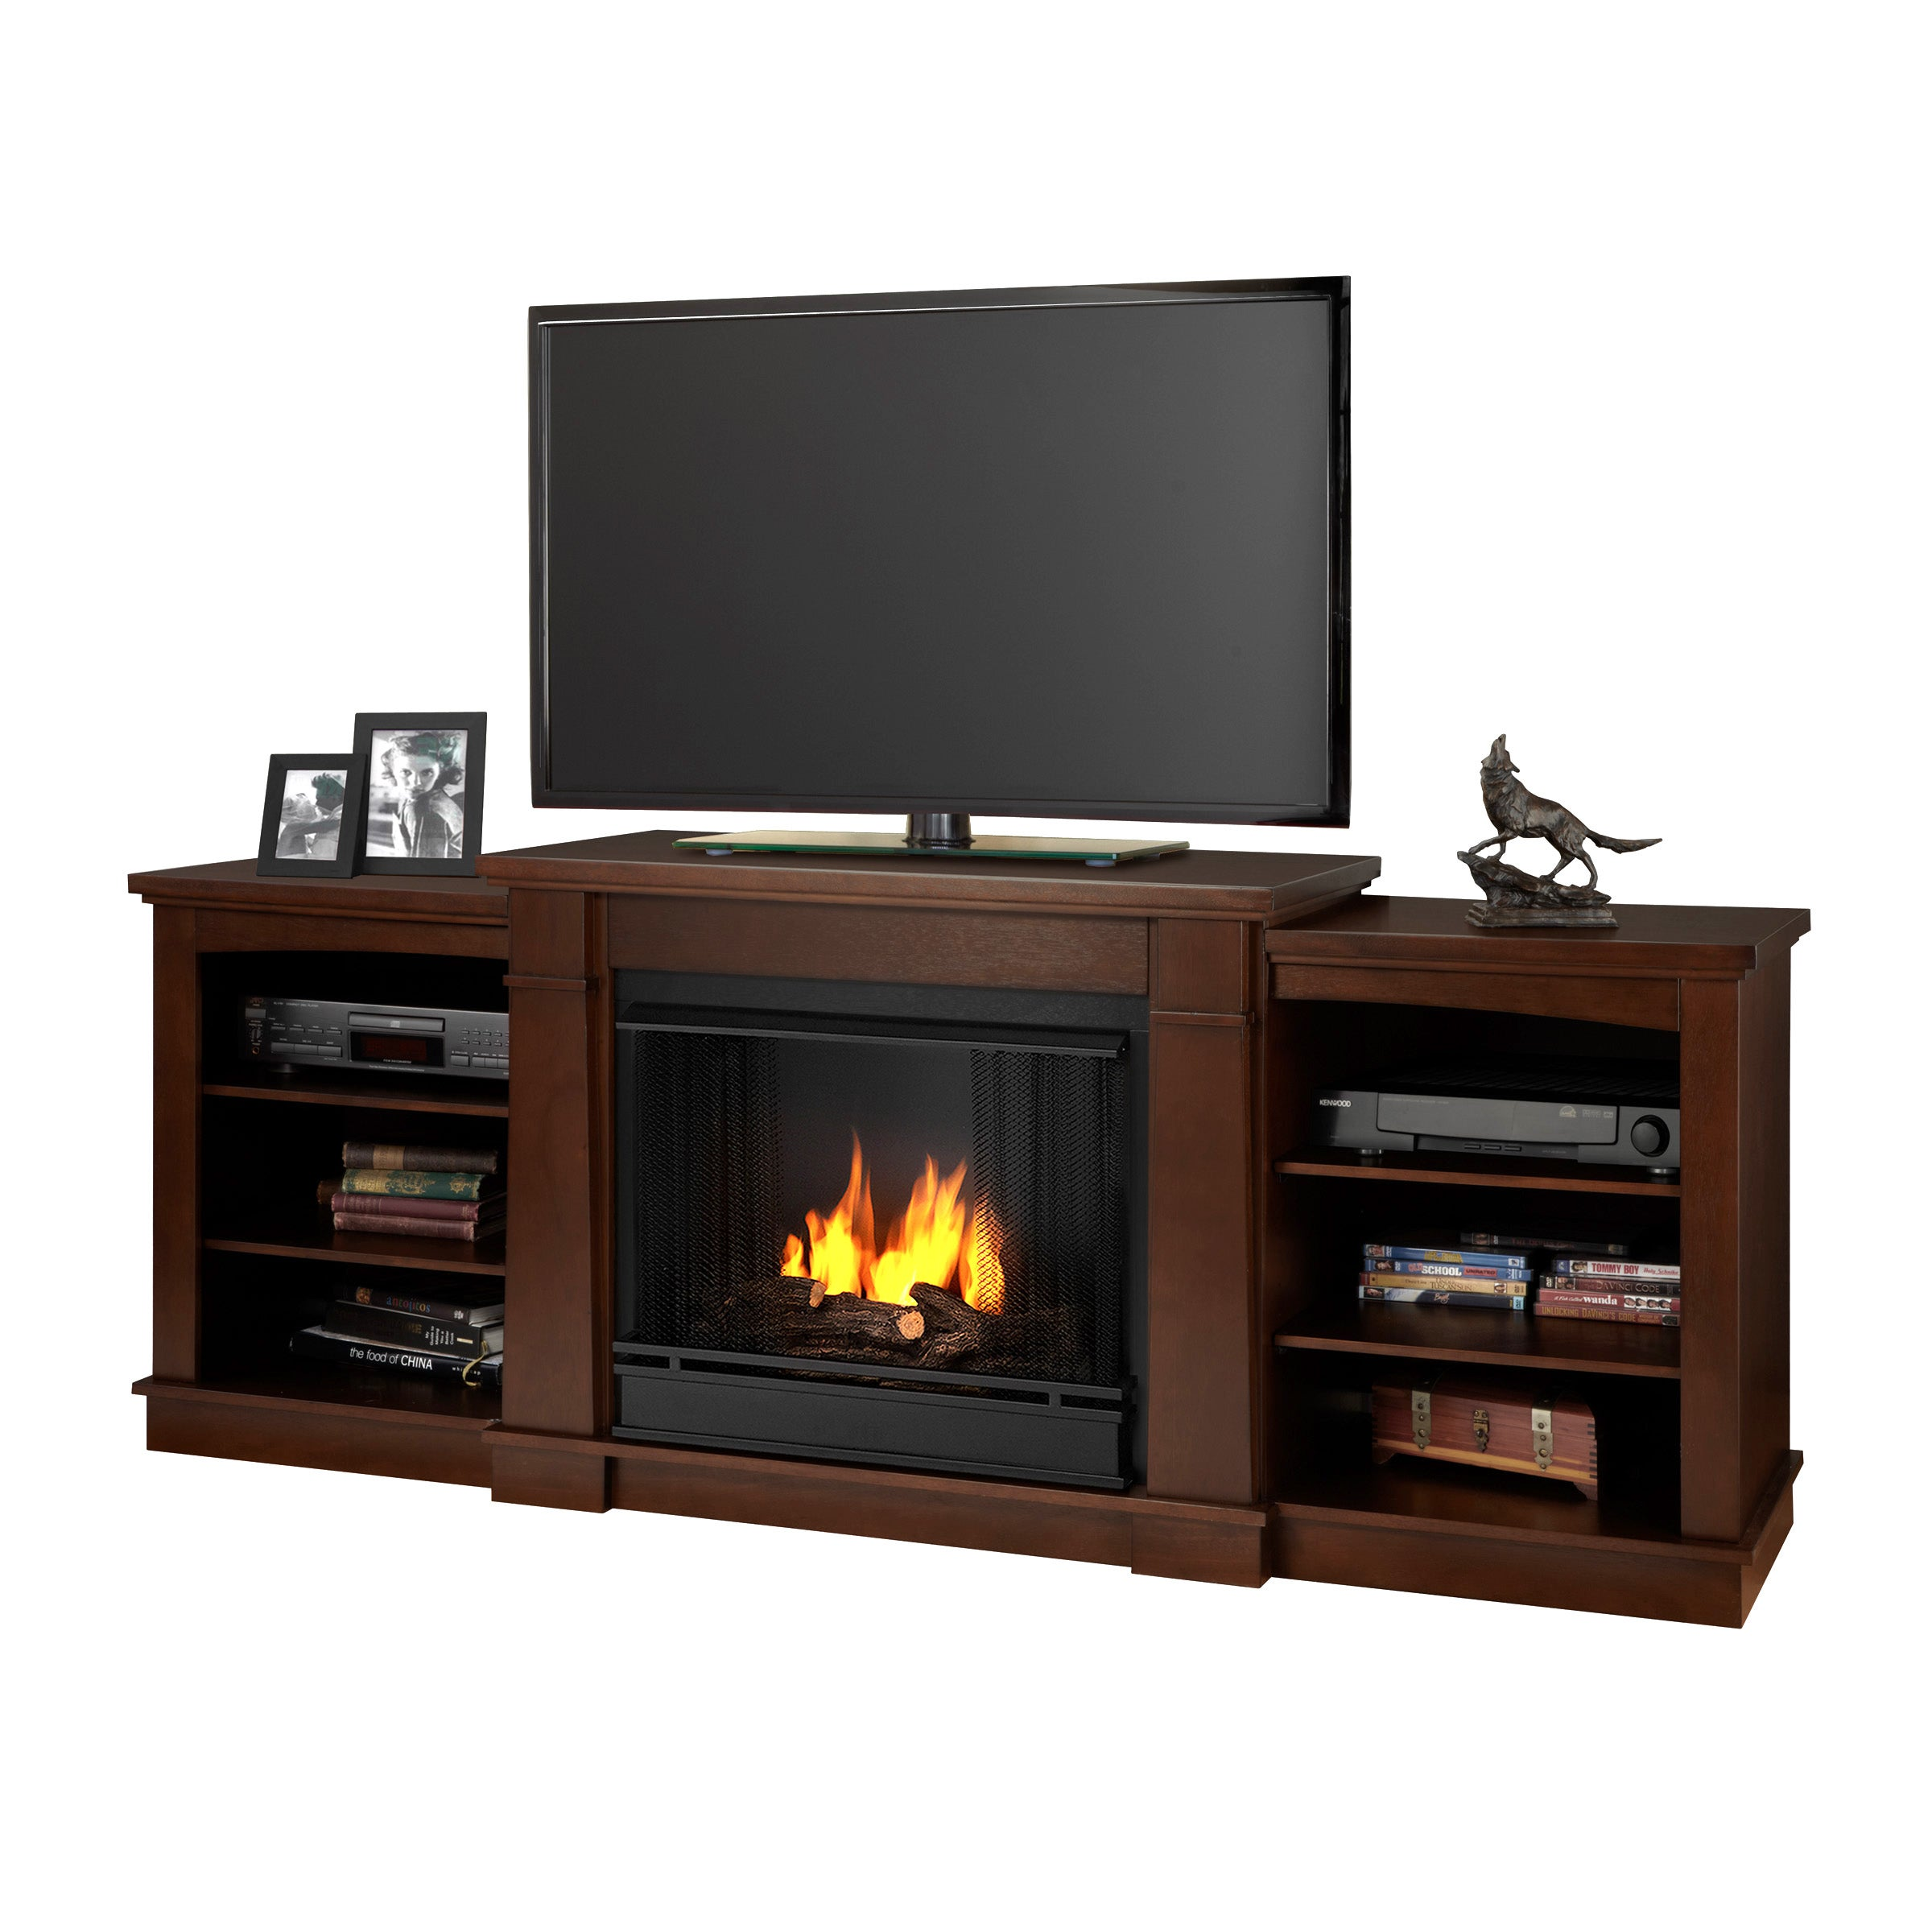 Real Flame Dark Espresso Gel Fuel Fireplace at Sears.com